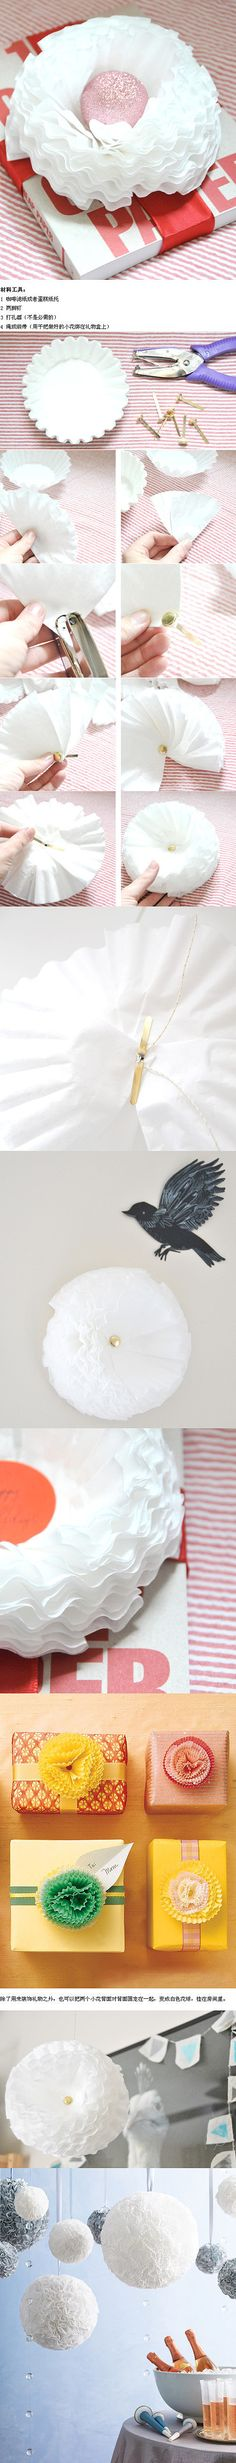 Great idea for decorating gifts (an more) with coffee filters or cupcake liners - maybe put a little dye on the edges?